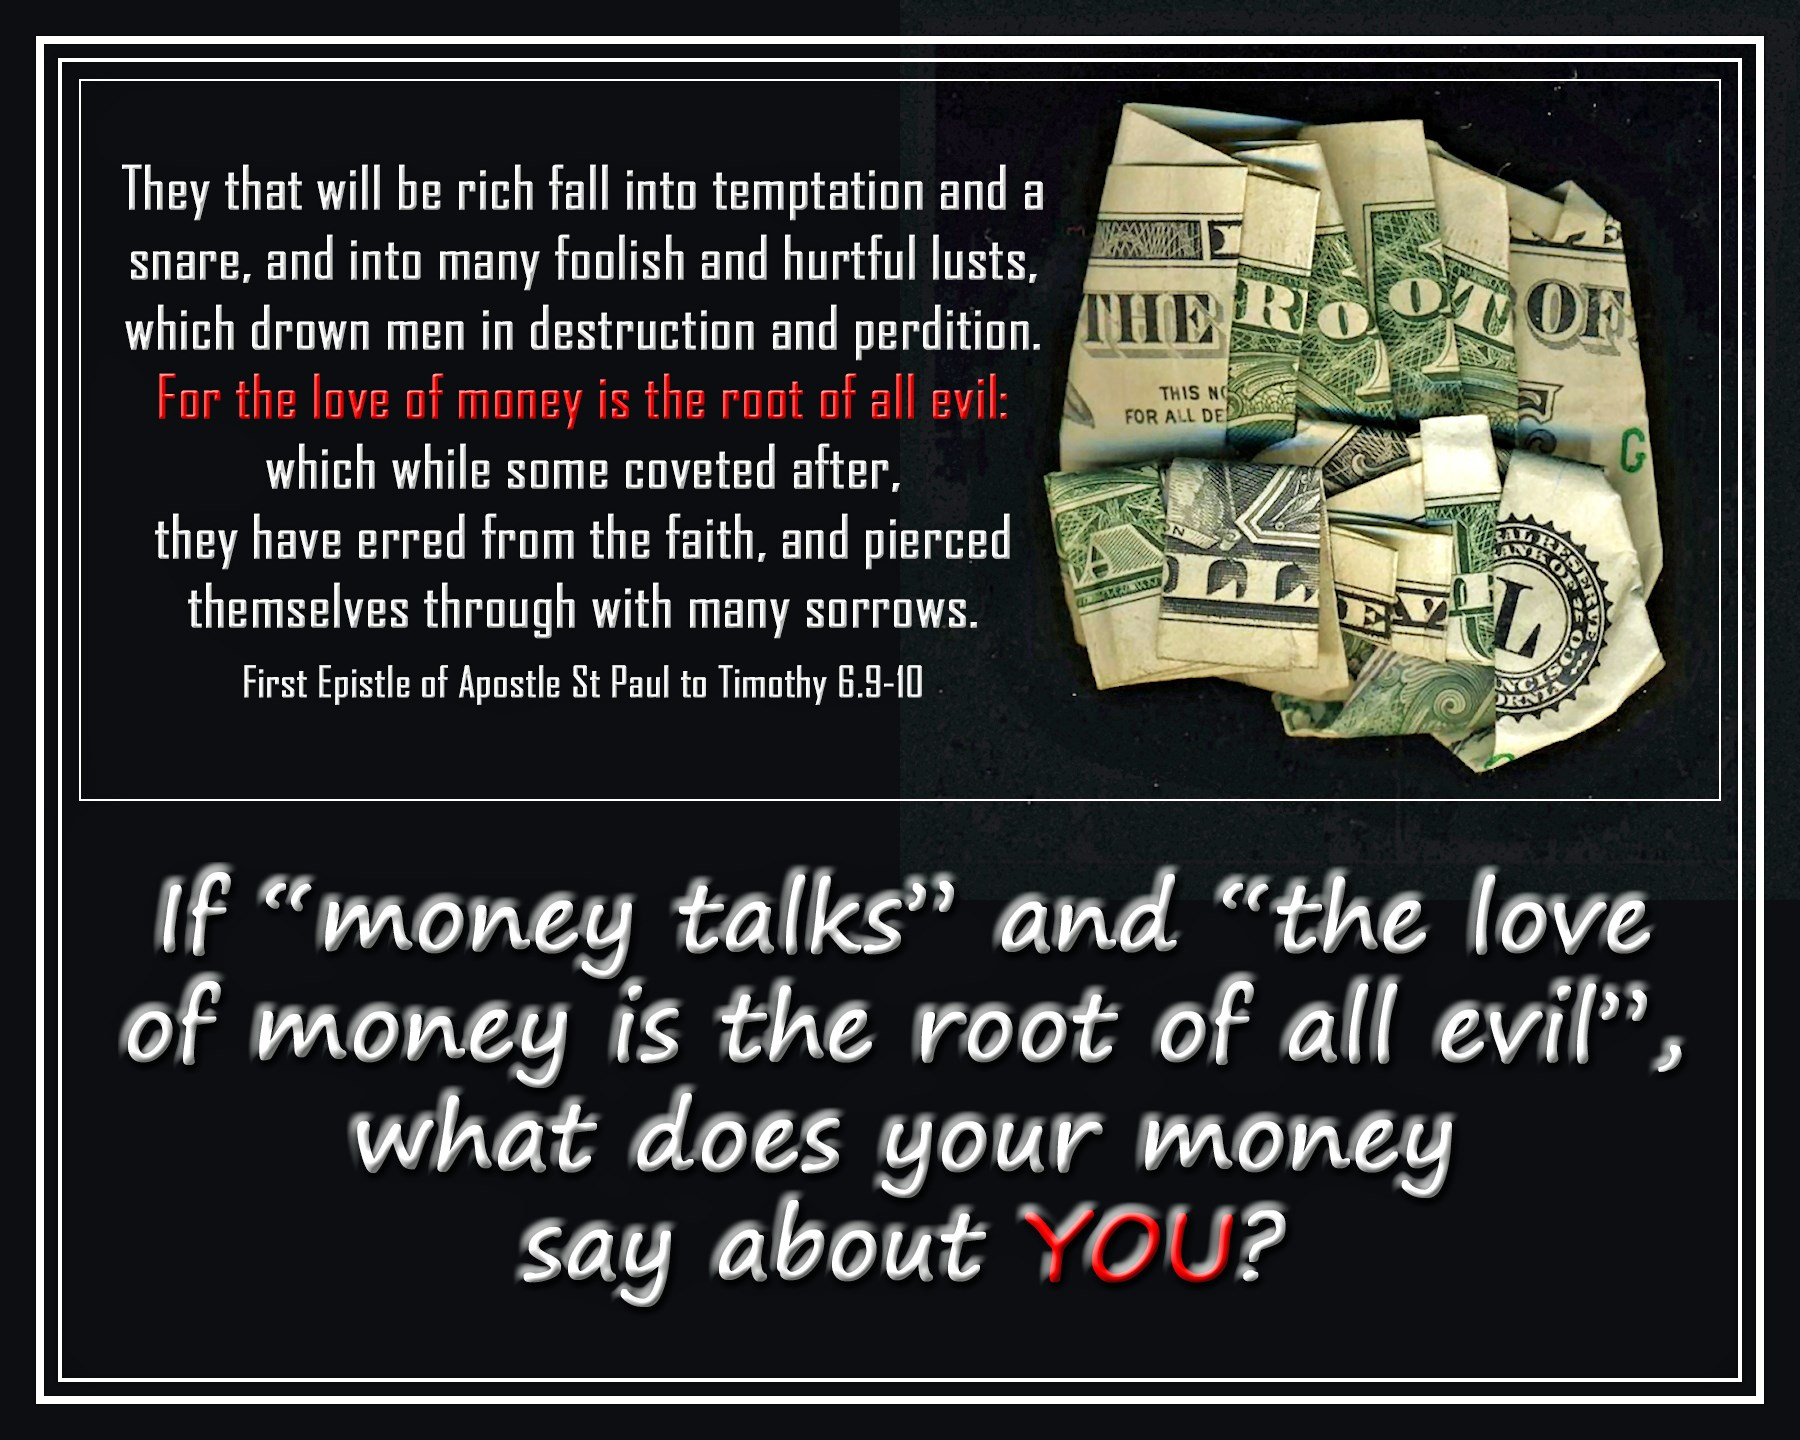 essay on the love of money is the root of all evil Money is not evil: money is the root of all evil money is root of all evil money is the root of all evil bible verse money is.